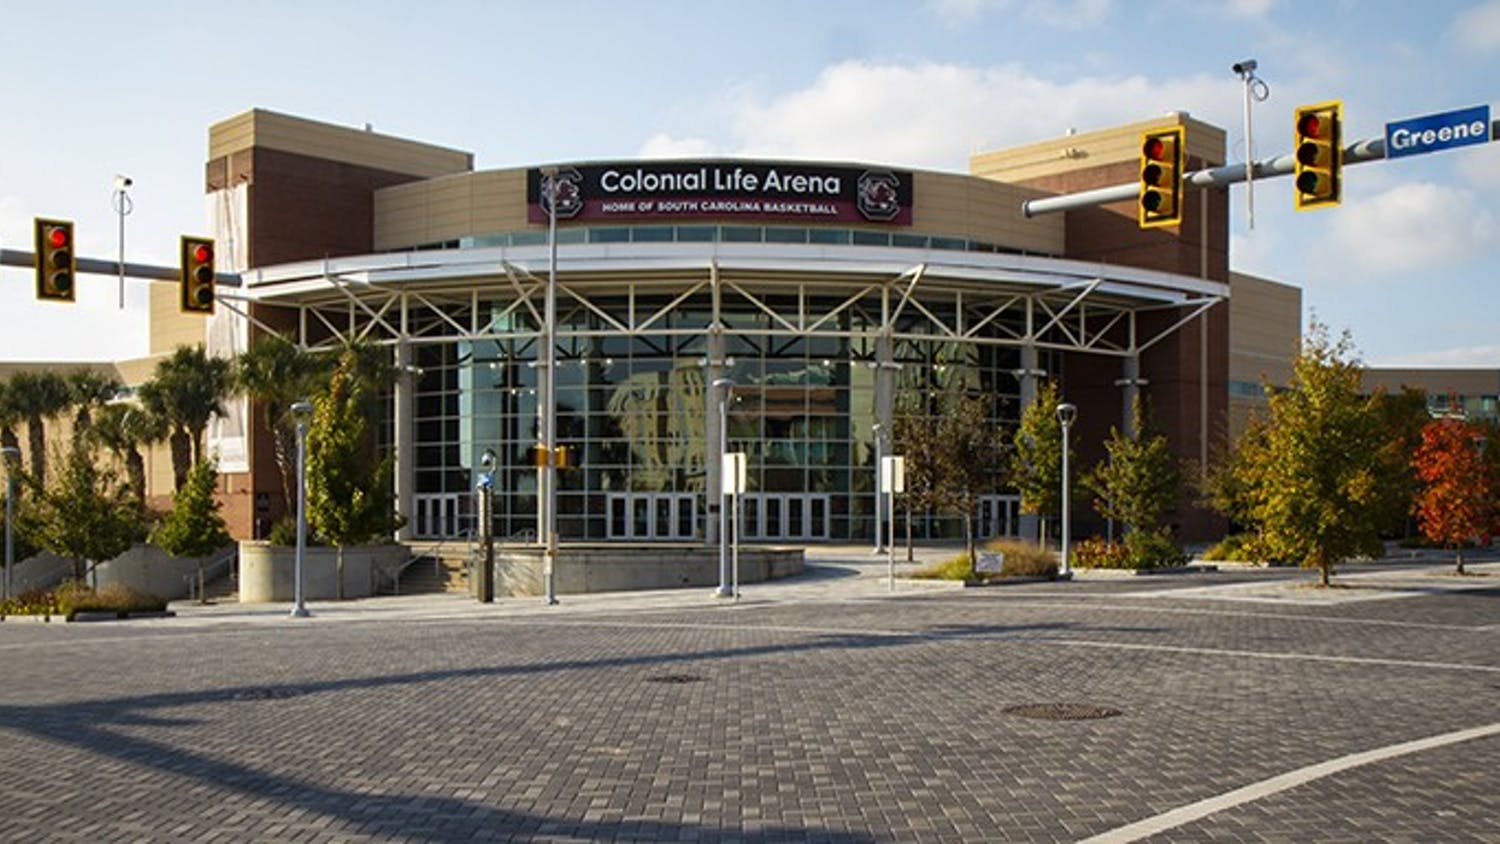 Colonial Life Arena is home to the University of South Carolina men's and women's basketball teams.